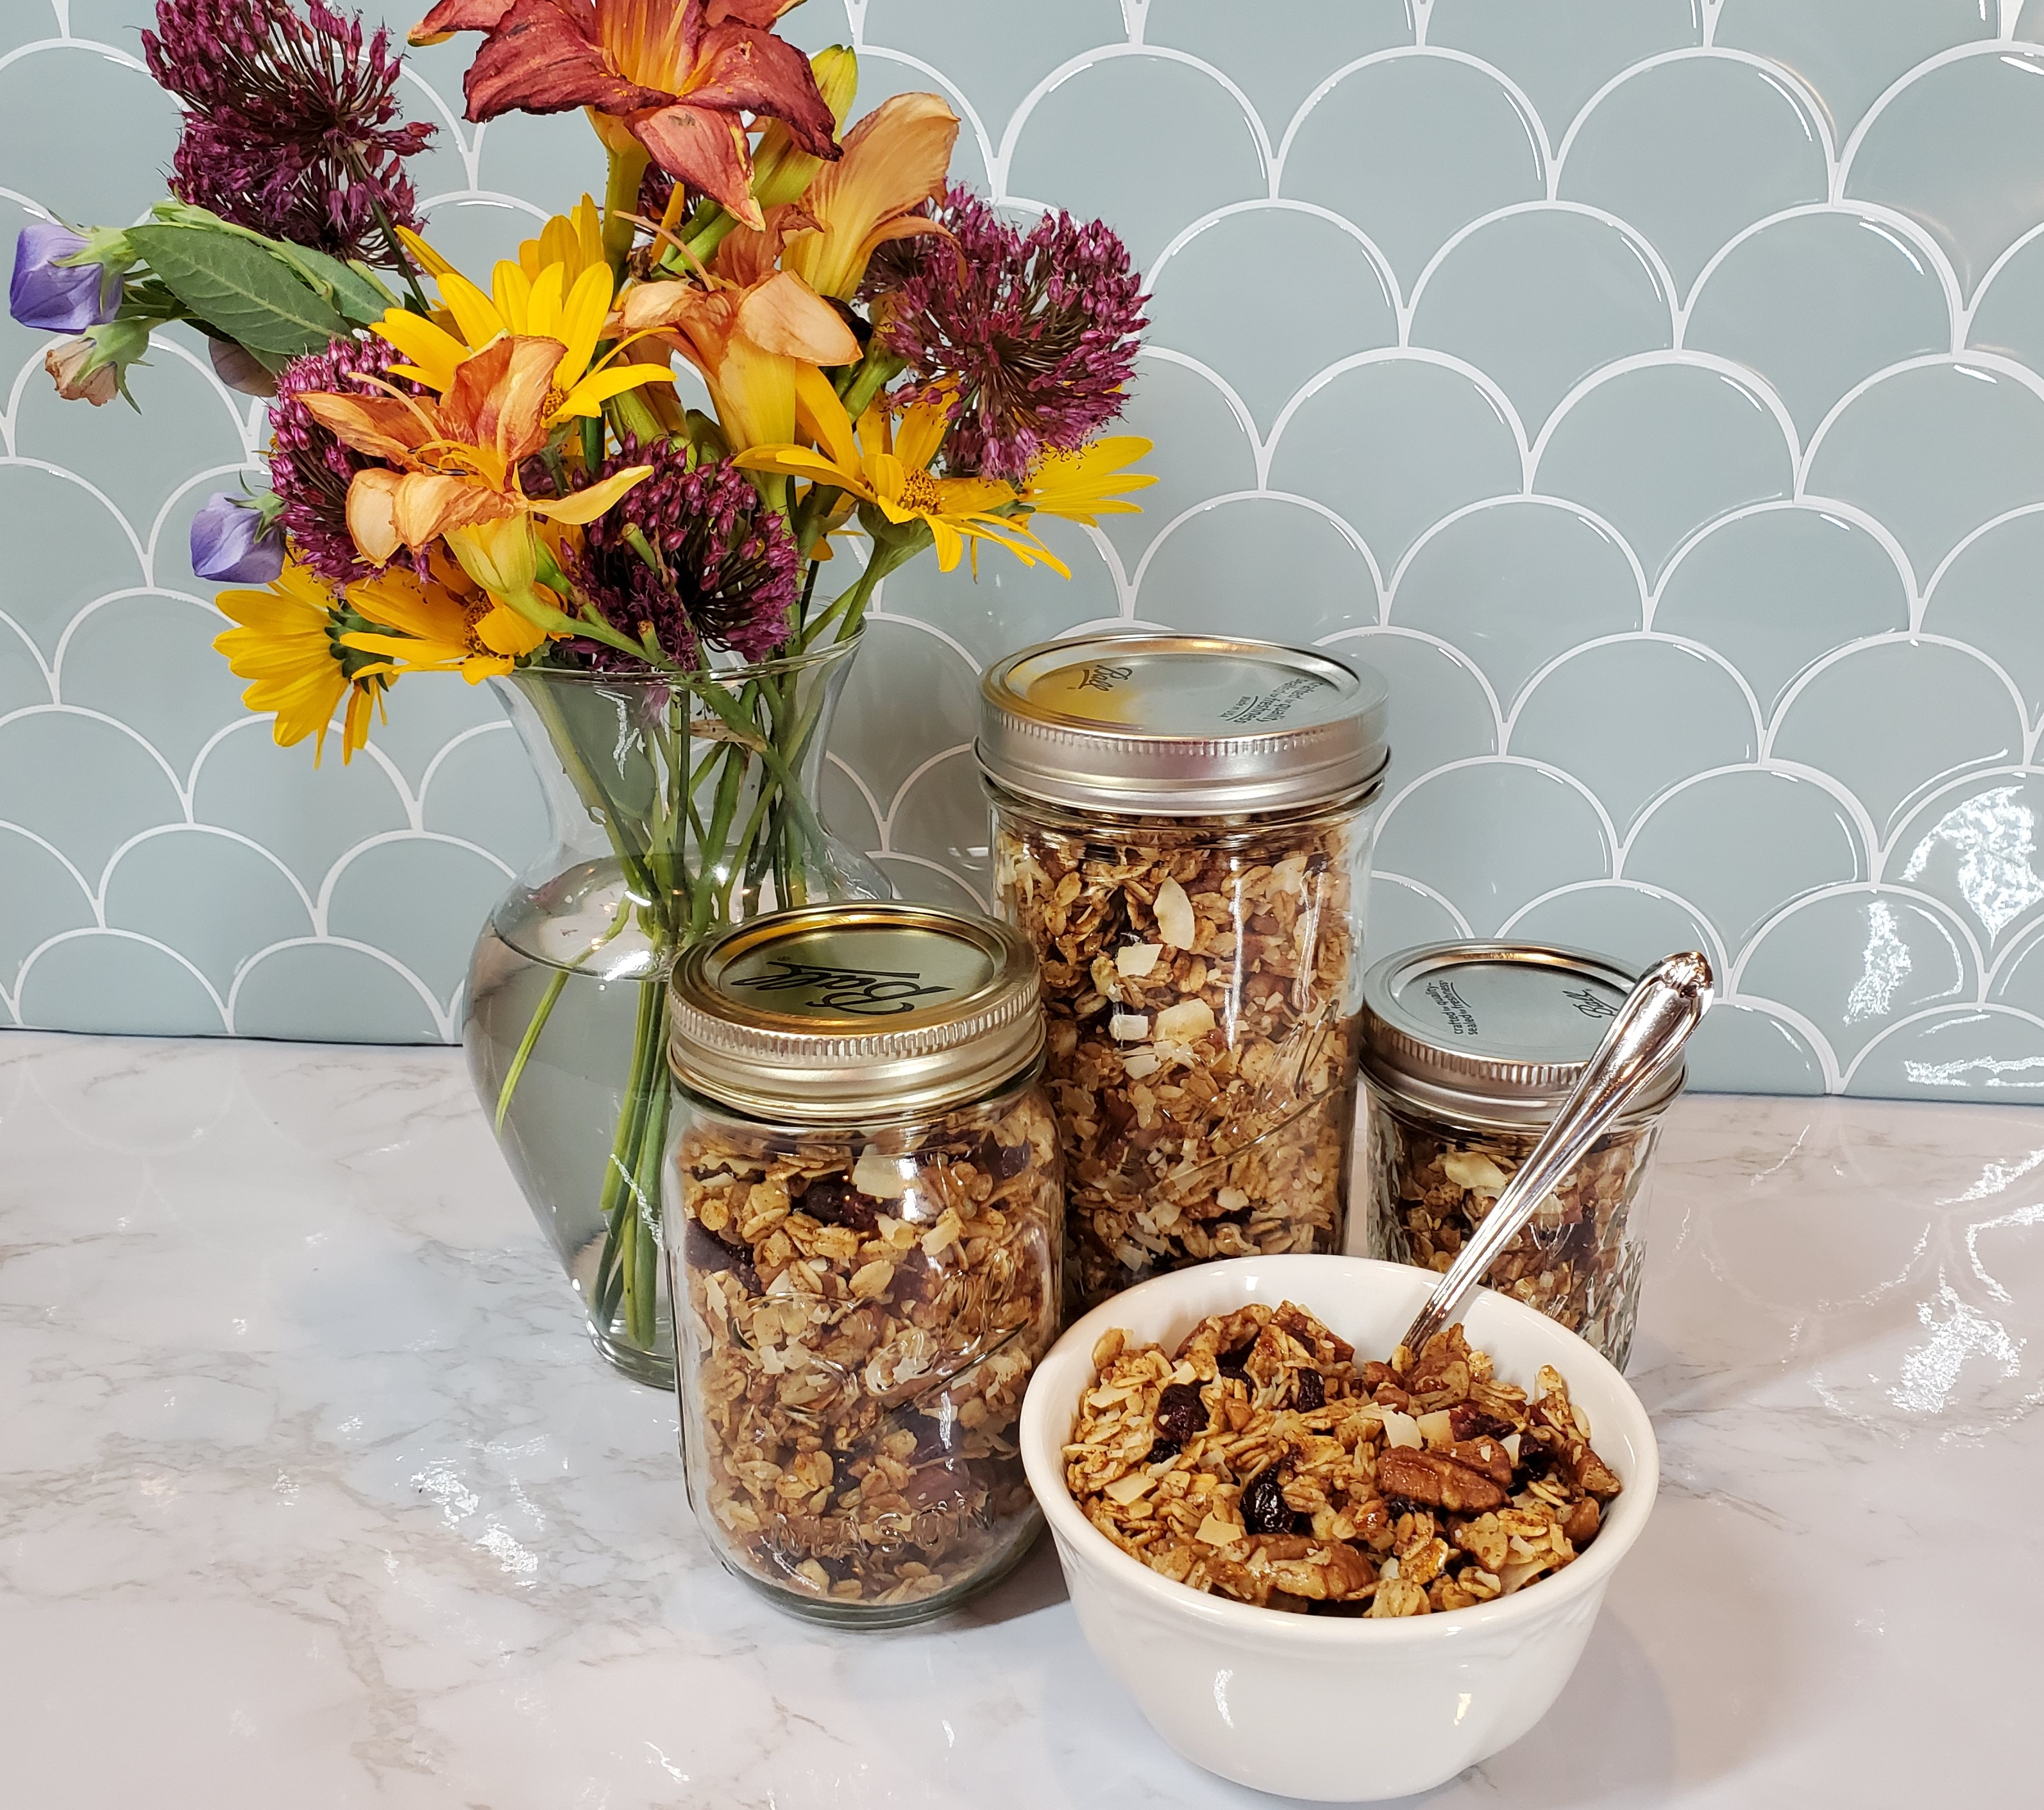 A bowl of pecan/craisin granola in a white bowl with a spoon sits in front of three Mason jars of granola on a white granite counter top. Behind it is a vase filled with yellow, pink and purple flowers and a shell turquoise tile backsplash.